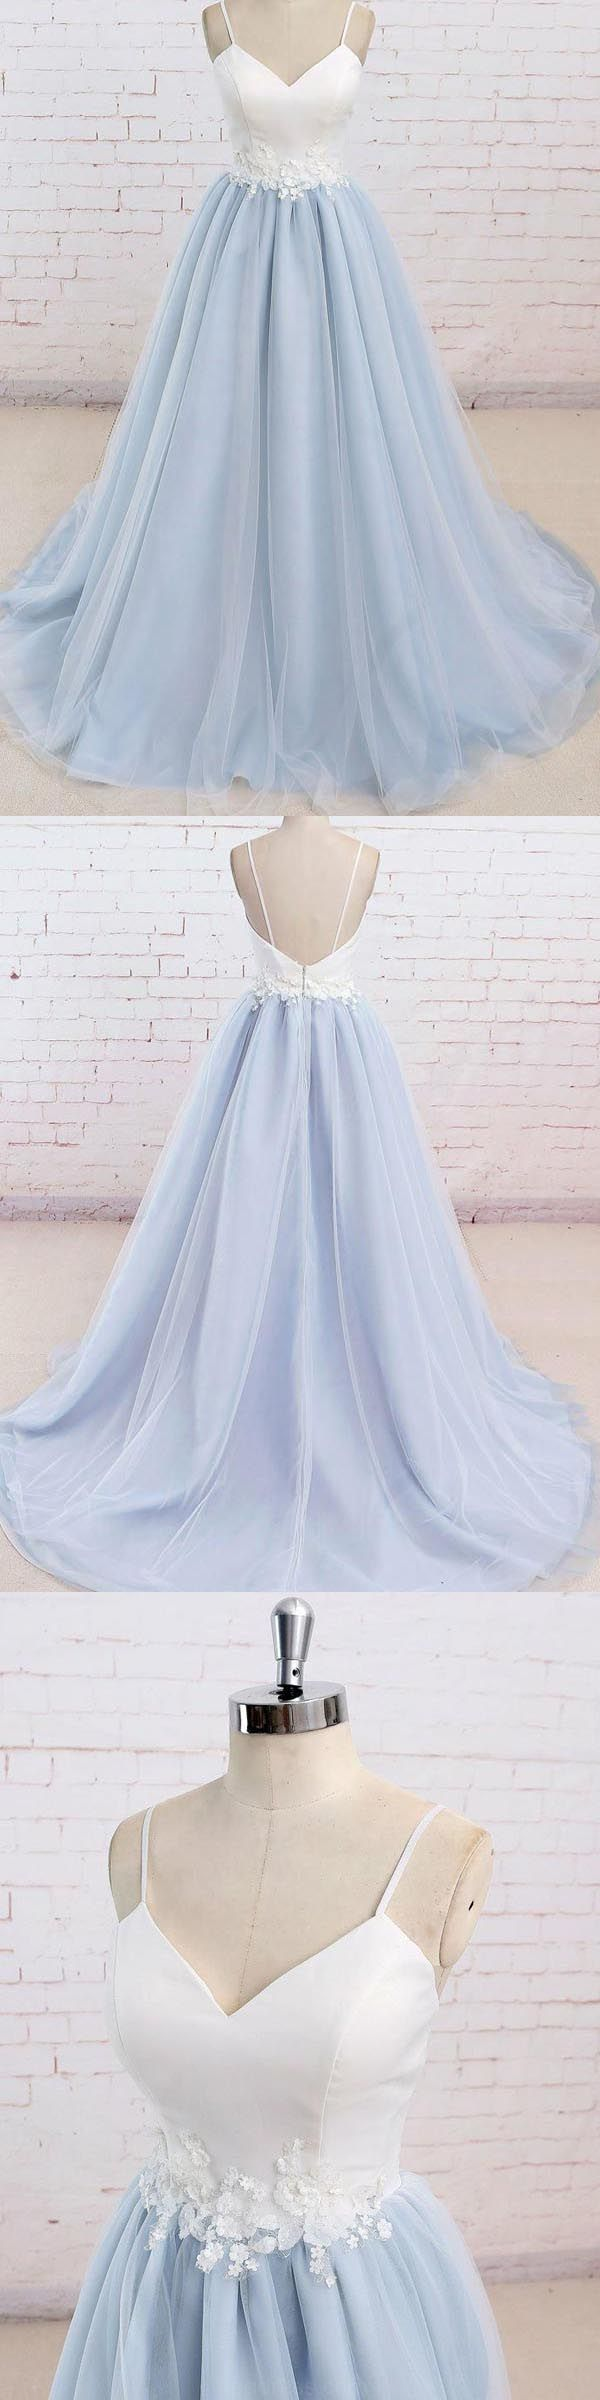 Ball Gown Prom Dresses, High Low Prom Dresses, 2018 Prom Dresses, Lace Prom Dresses 2018, Backless Prom Dresses, Simple Prom Dresses, #lacepromdresses, #2018promdresses, Long Prom Dresses, #longpromdresses, Lace Prom Dresses, Long Prom Dresses 2018, Lavender Prom Dresses